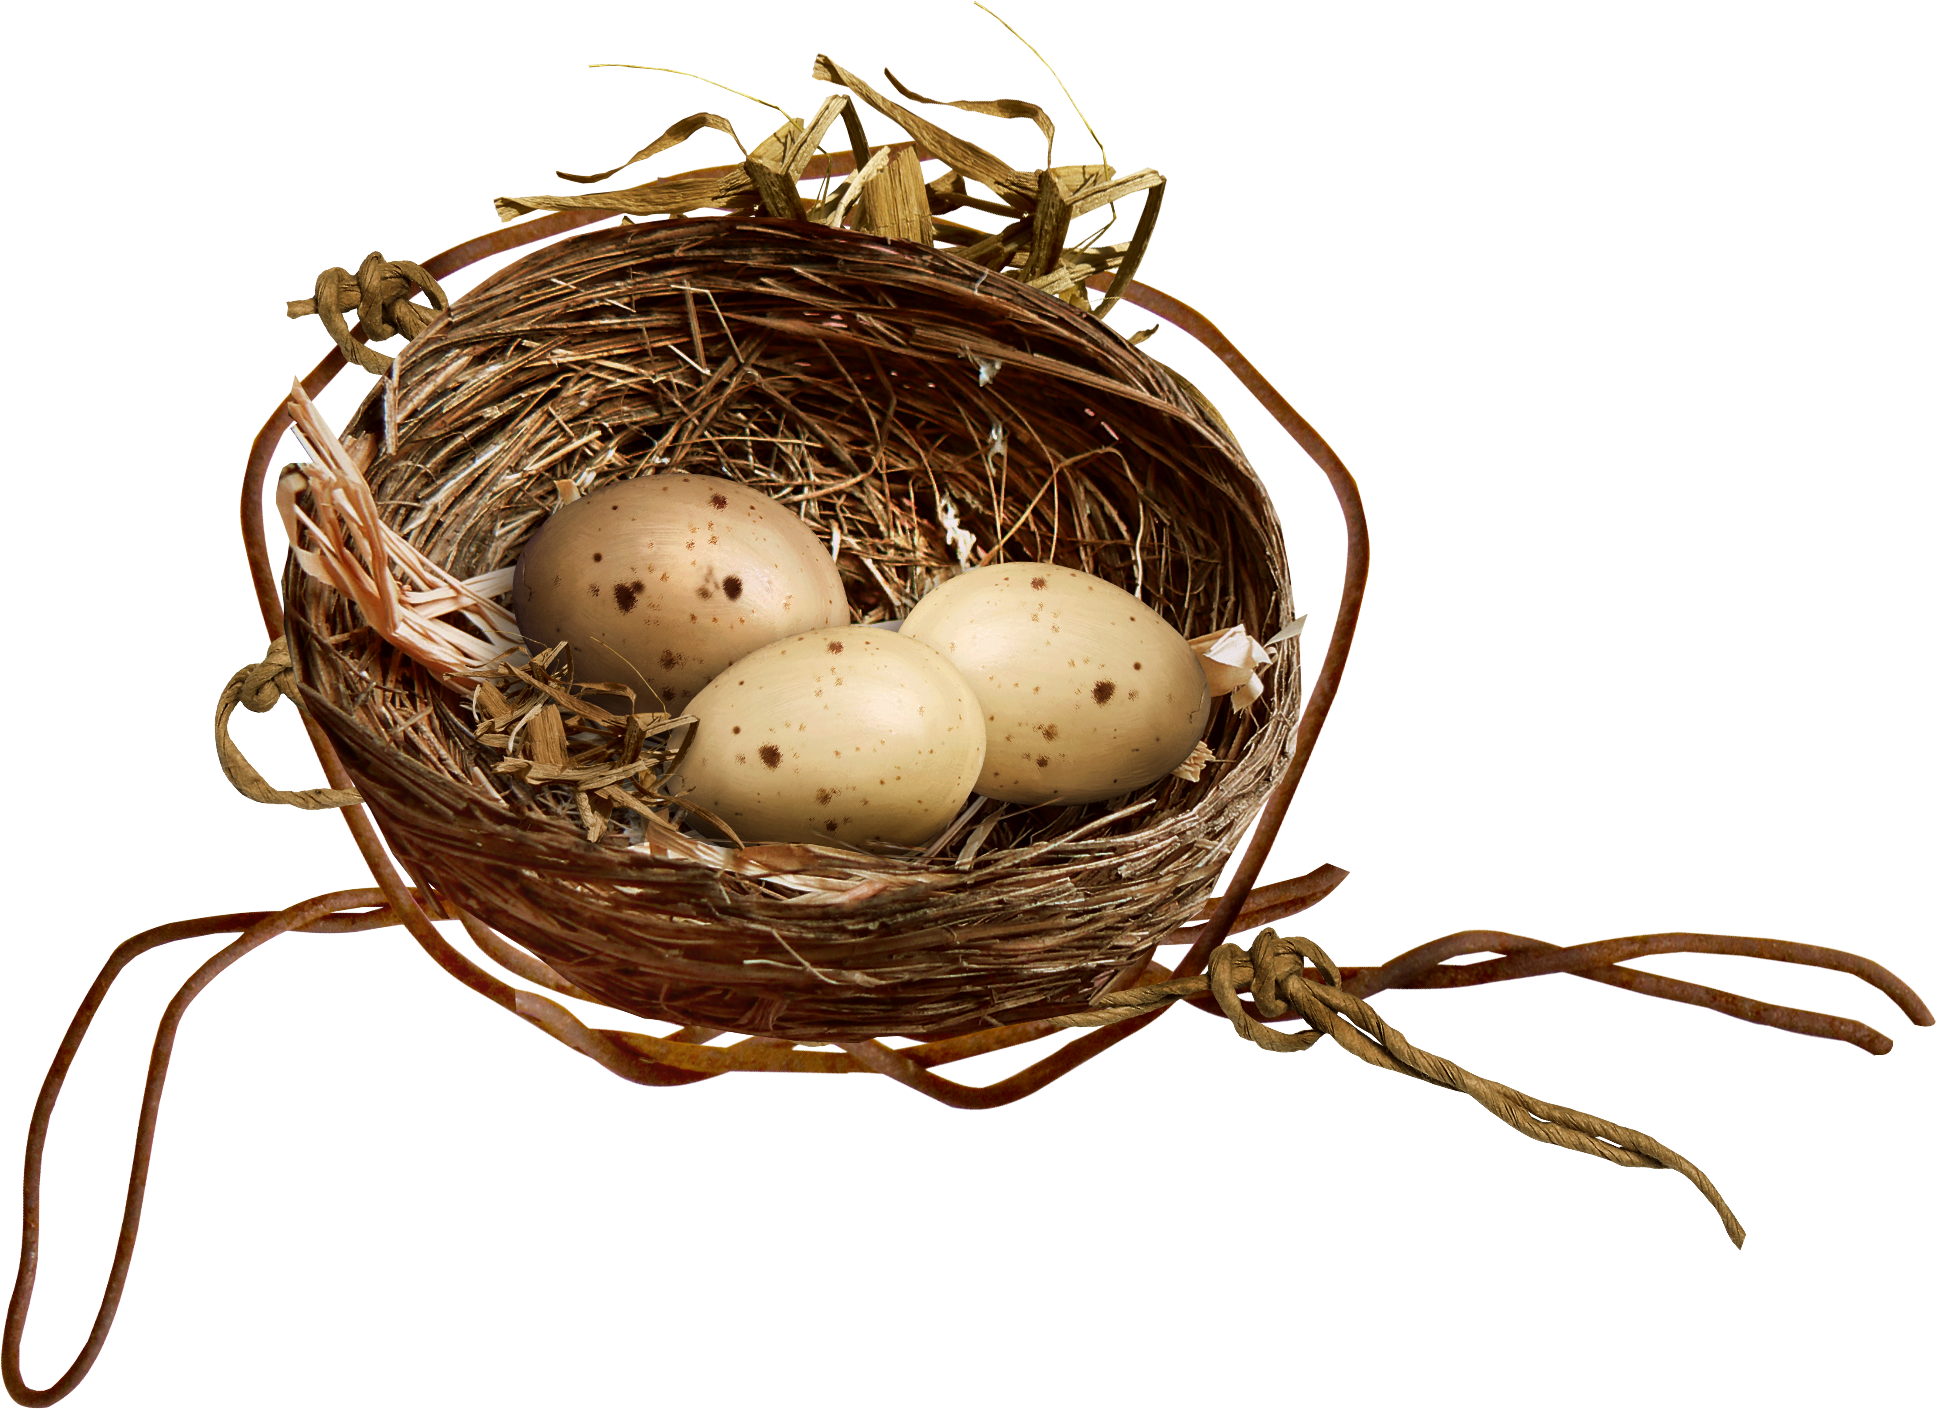 Egg clip art transprent. Nest clipart bird food